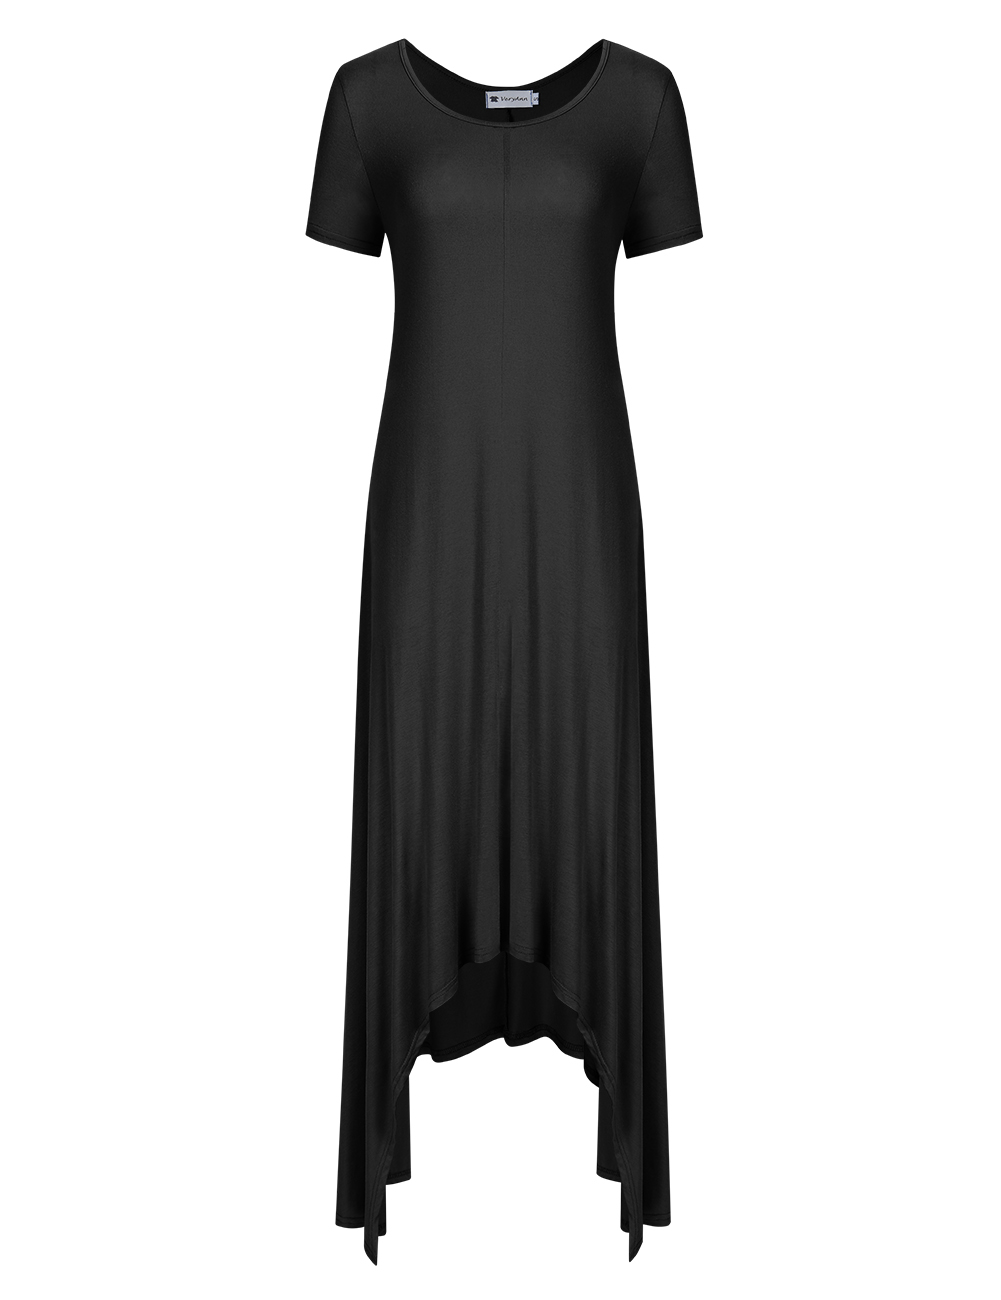 VeryAnn Women Casual Asymmetrical Dress